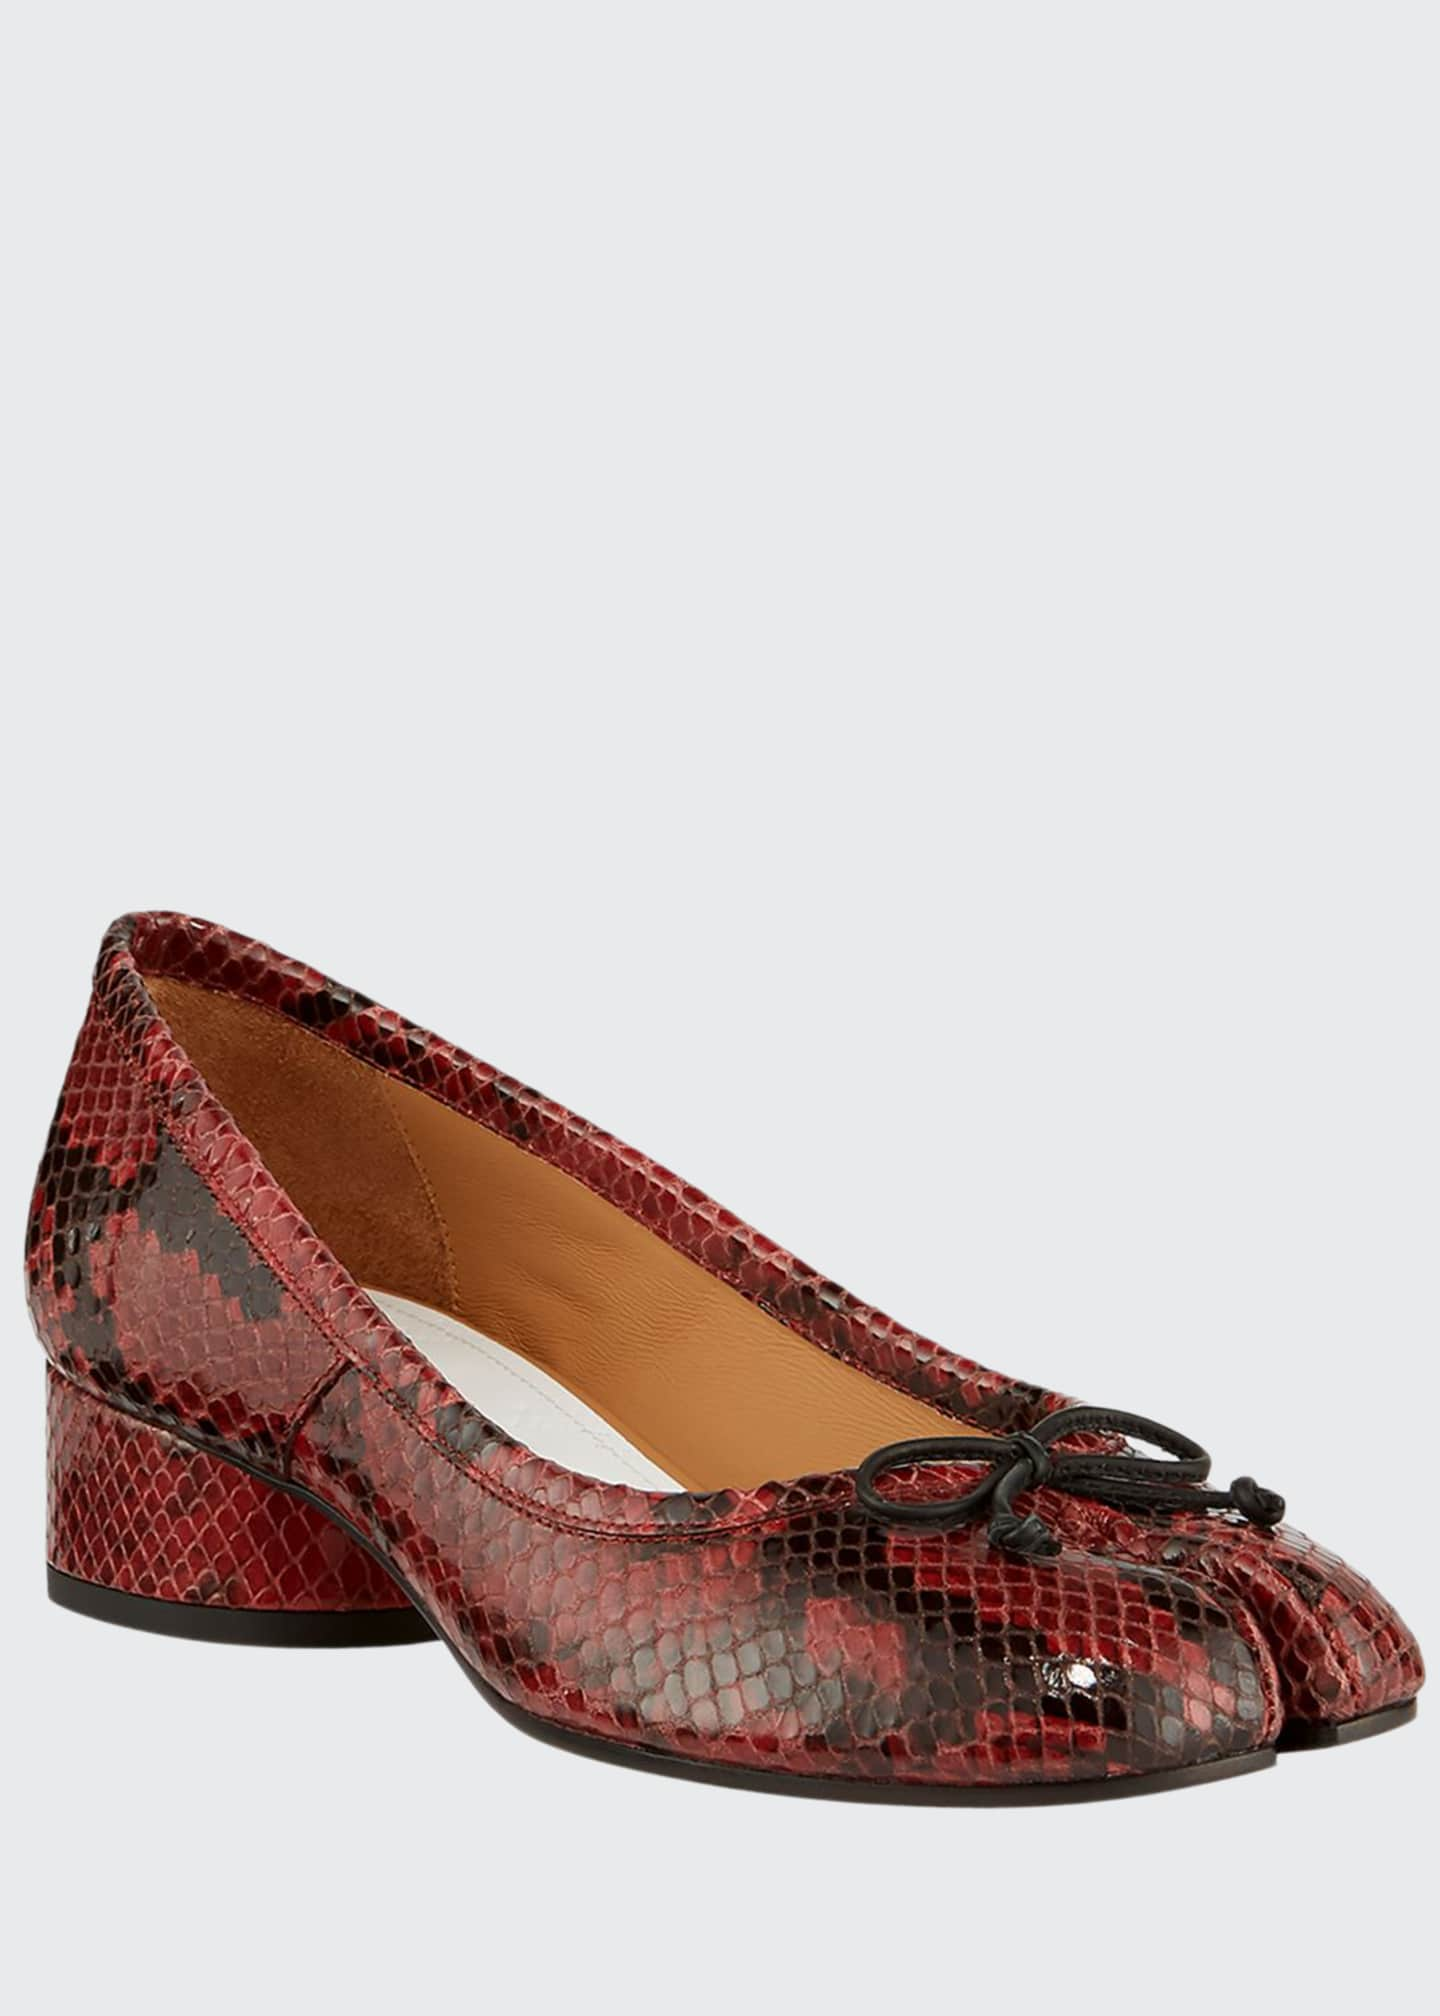 Maison Margiela Tabi Snake-Print Ballerina Pumps with Split